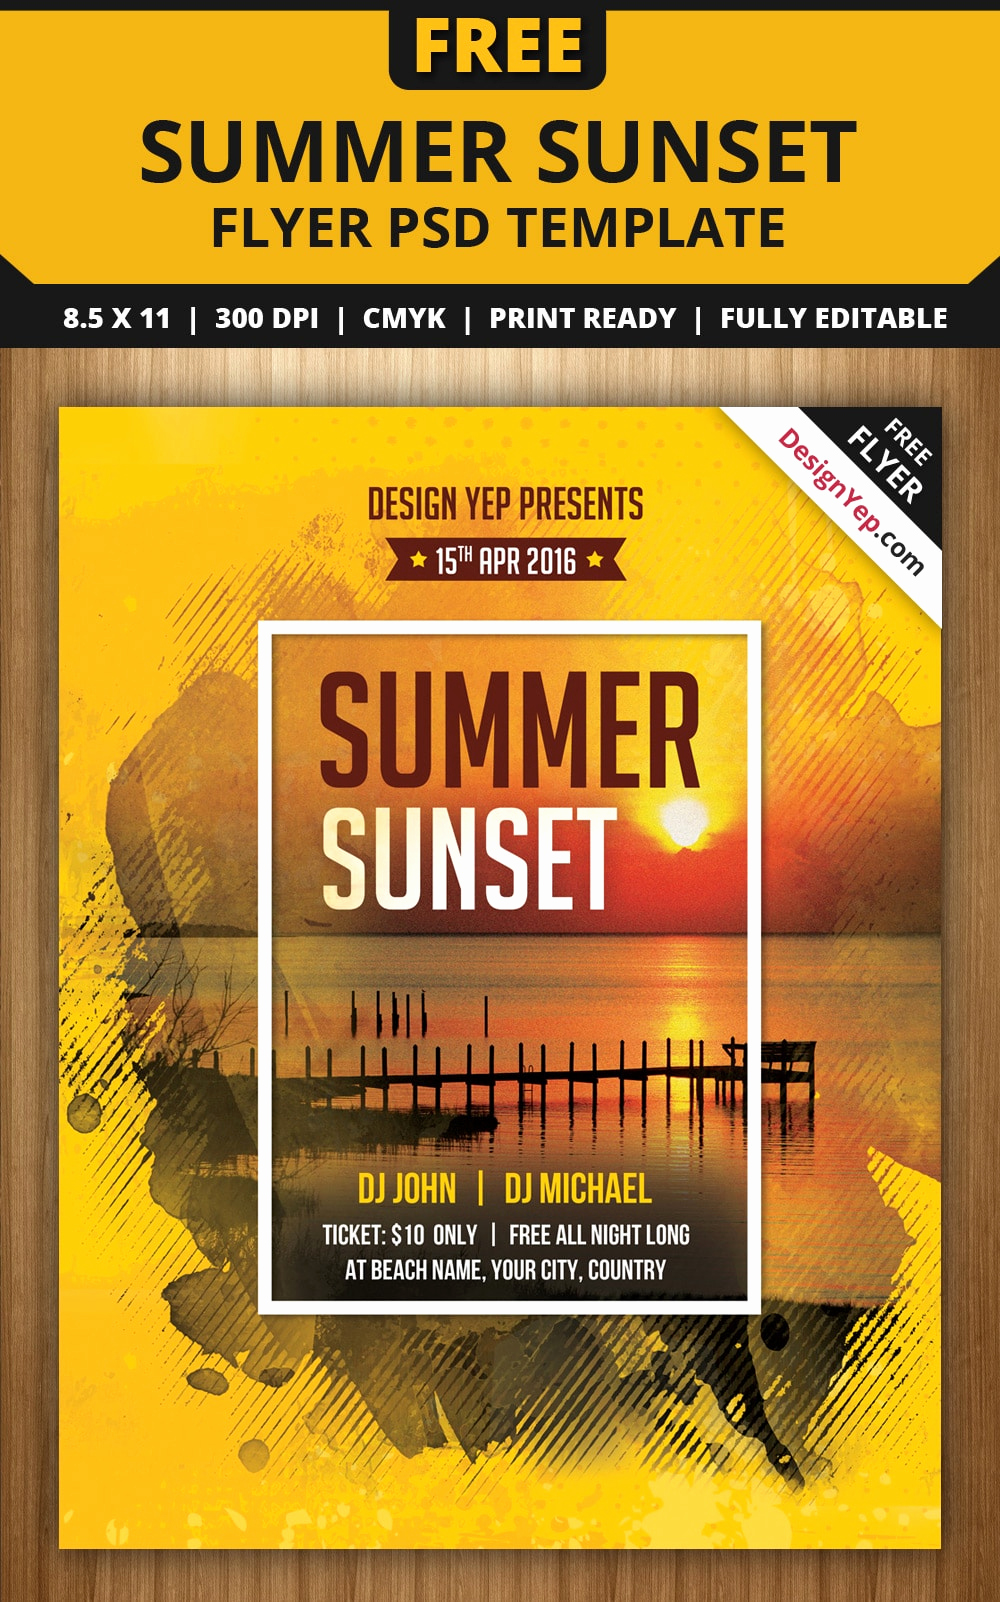 Event Flyer Templates Free Luxury Free Flyer Templates Psd From 2016 Css Author